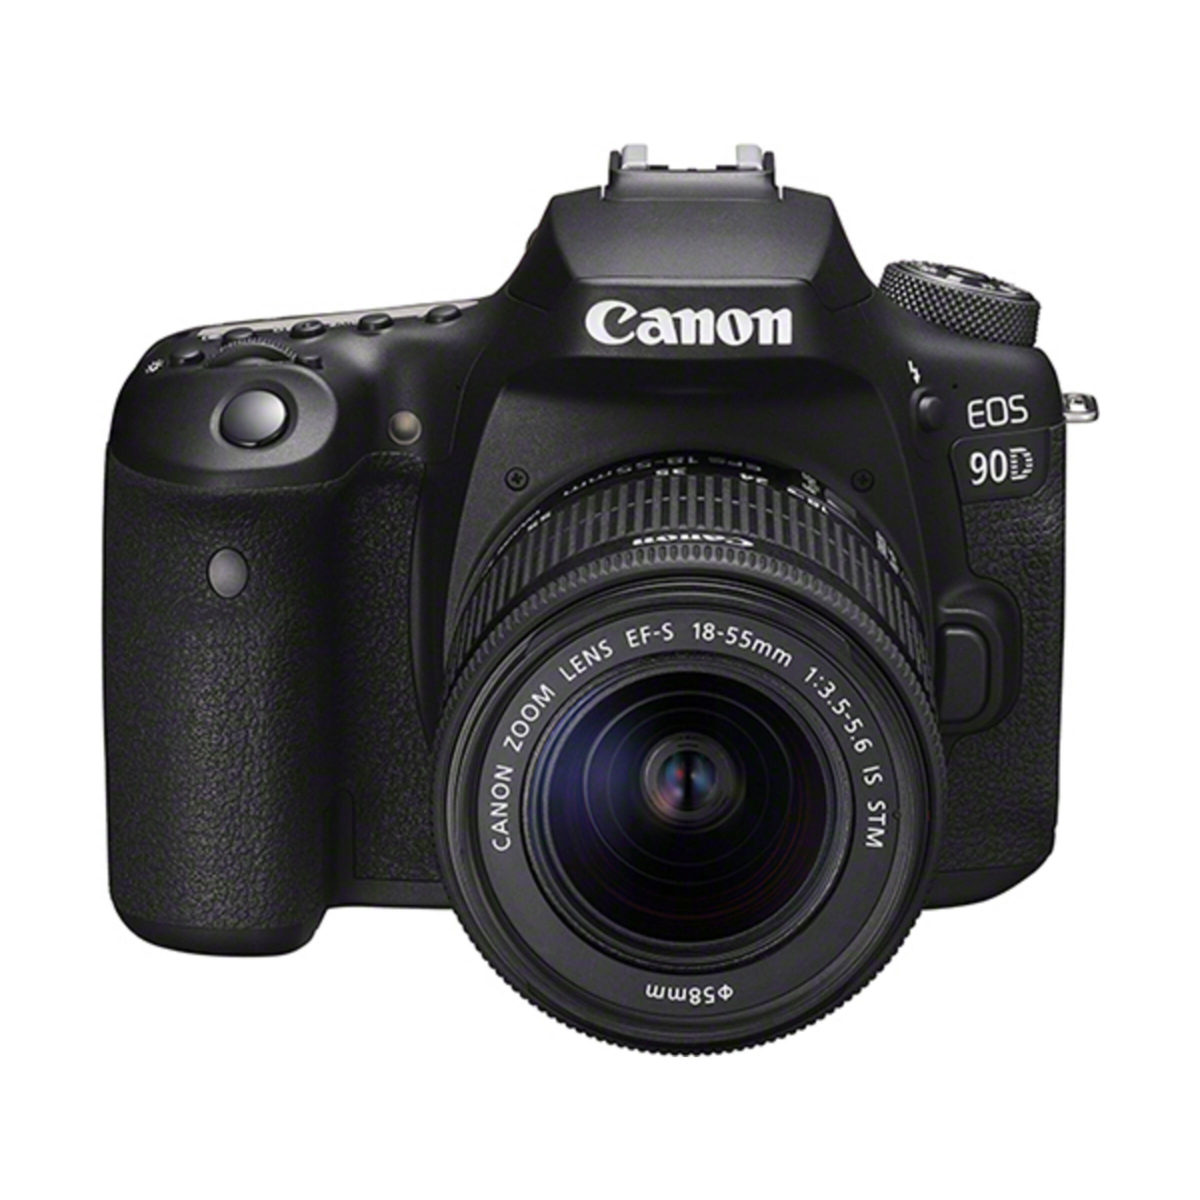 canon_eos_90d_efs_1855_is_stm_02